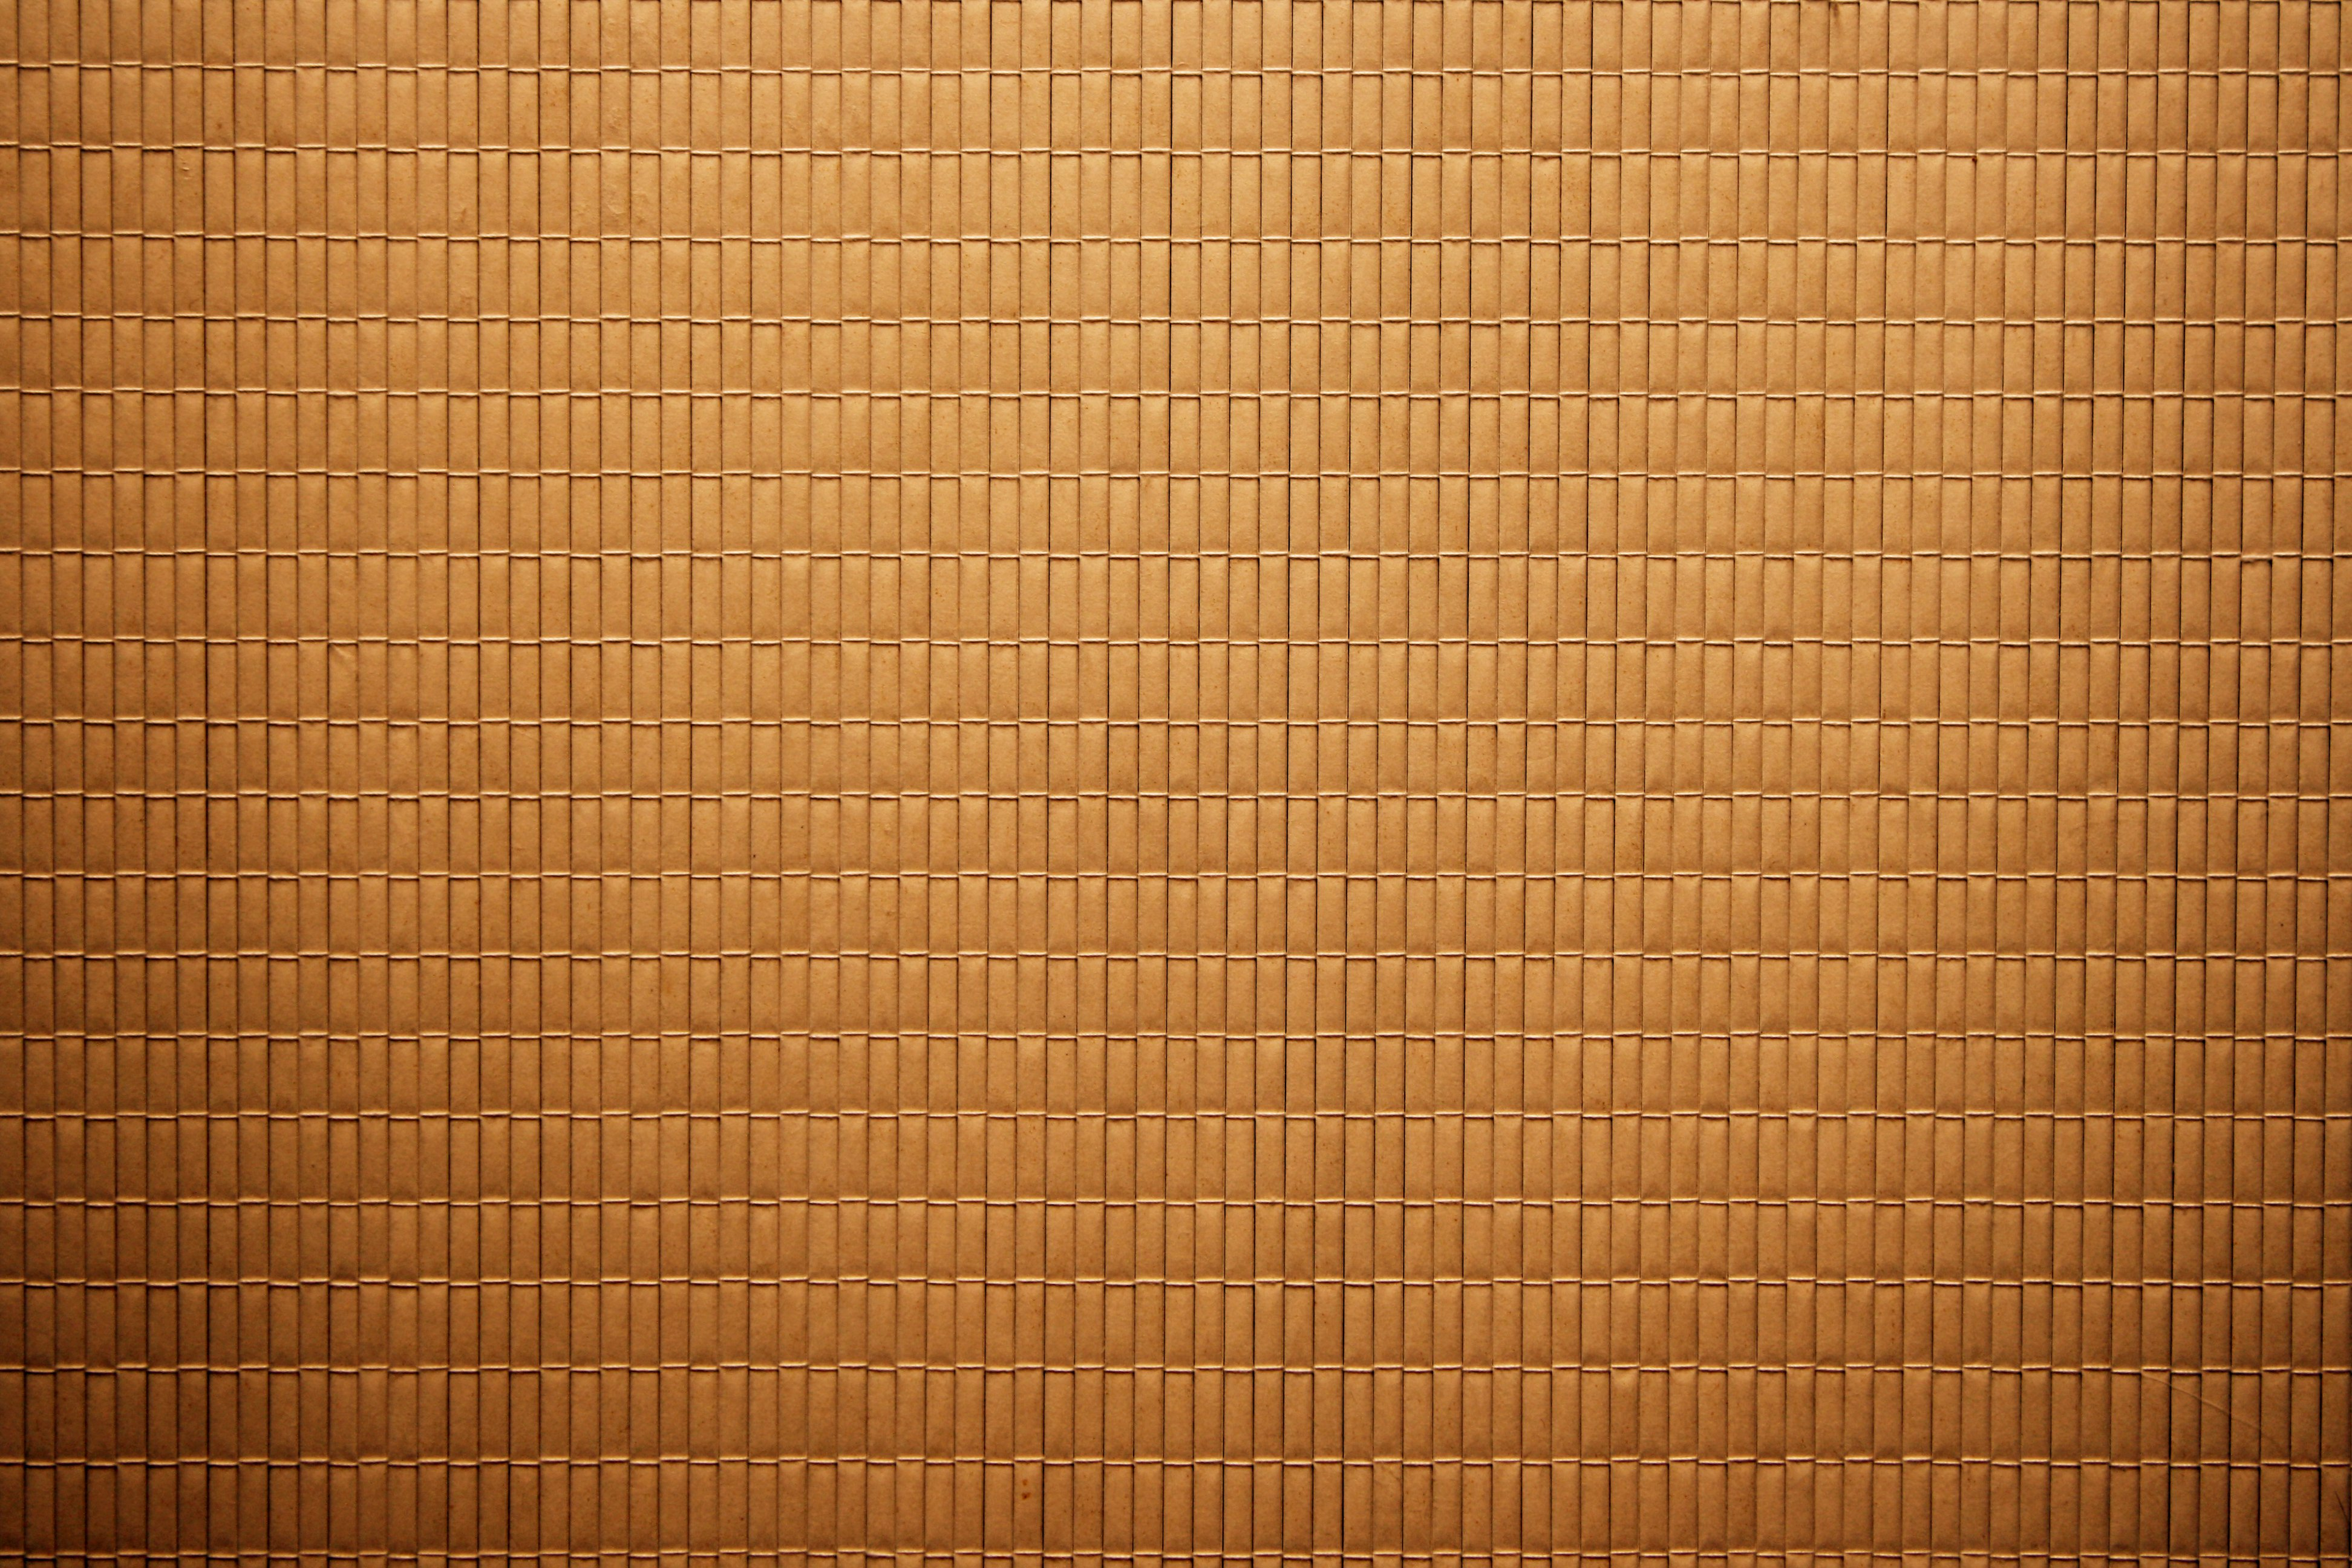 Yellow Carpet Texture also Blue Texture Wallpaper together with Egg Shell Texture furthermore Stone Plate 1 451 besides 385198574364279825. on carpet texture